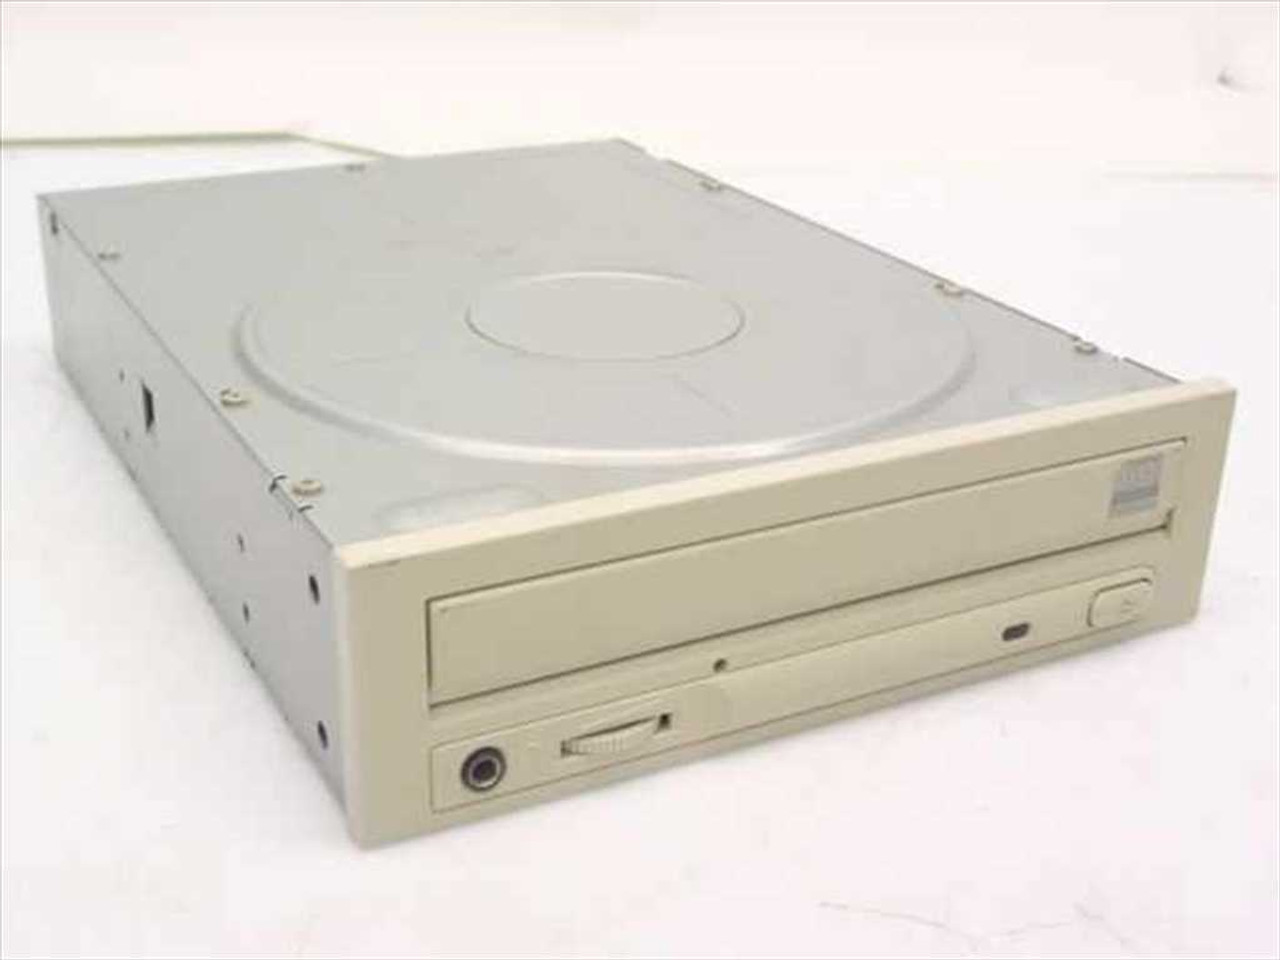 Mitsumi CR-4802TE Internal CD-RW Update